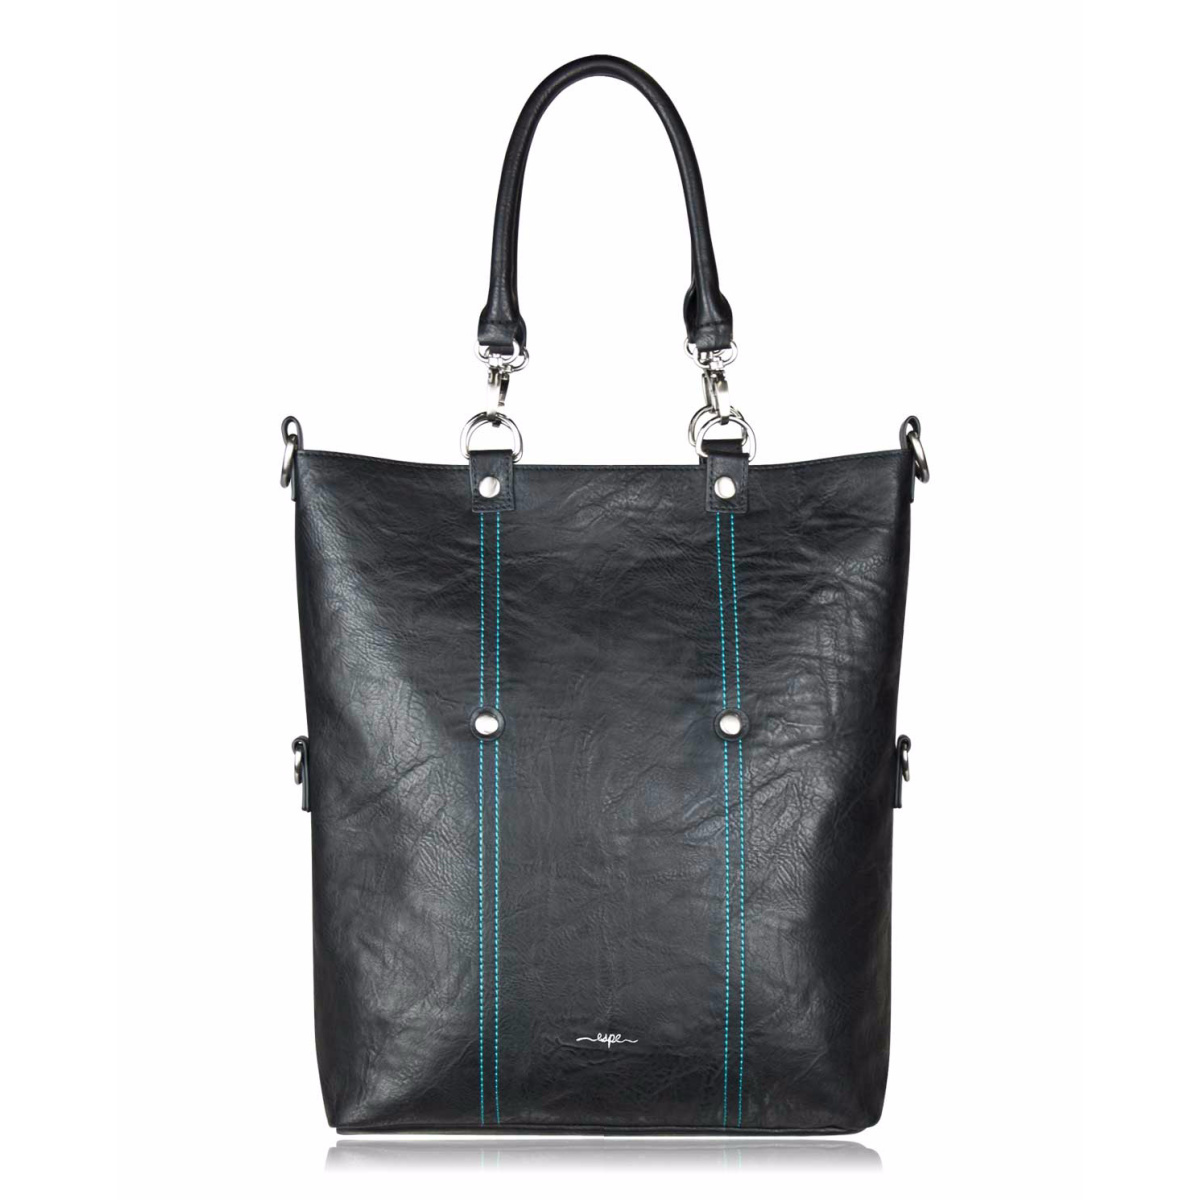 Espe Espe Groovi Multi-Use Handbag